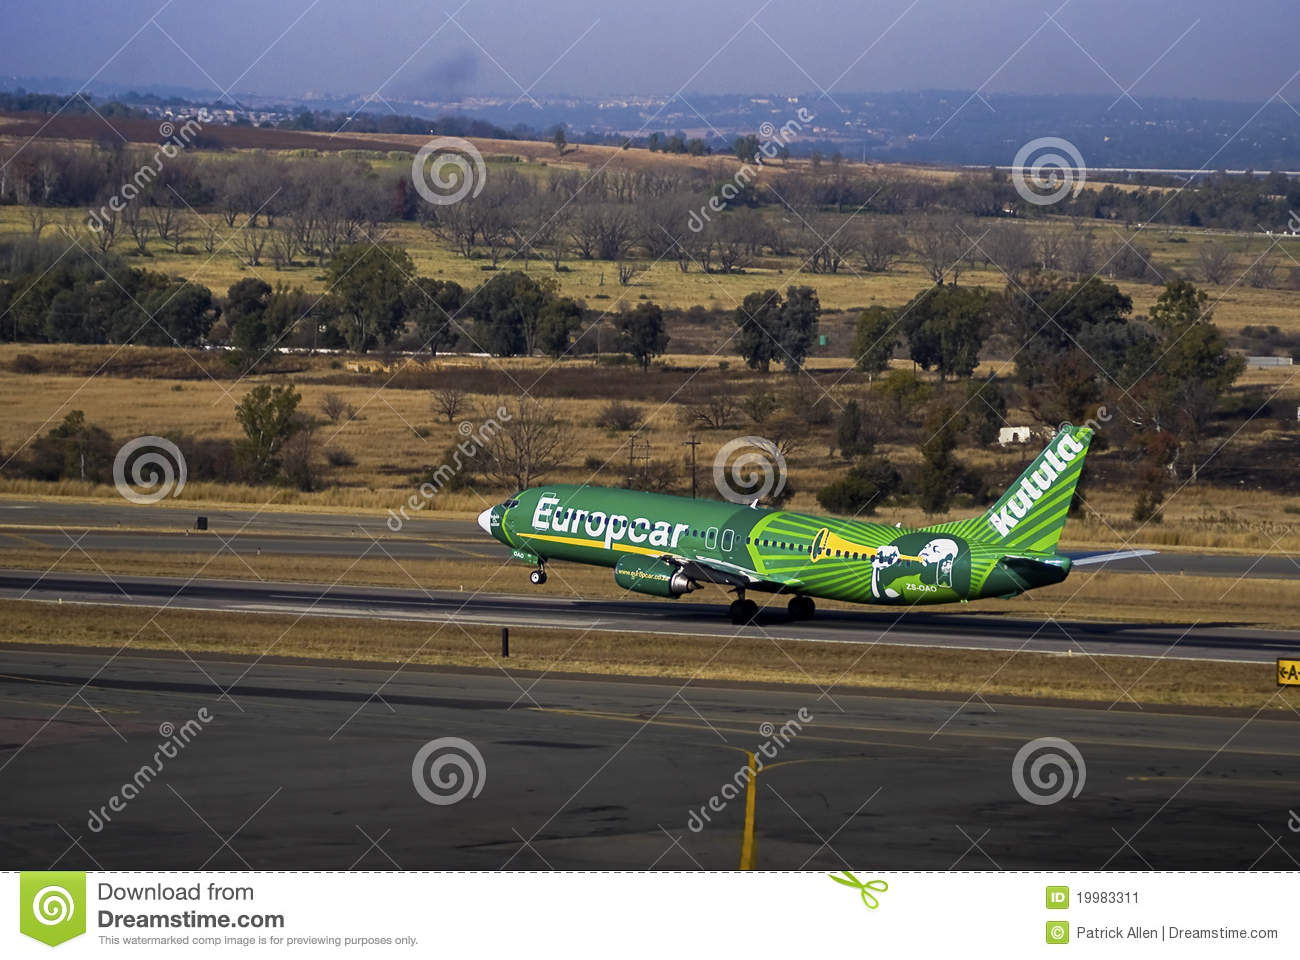 Kulula Airways - Boeing 737-4S3 - ZS-OAO - takeoff